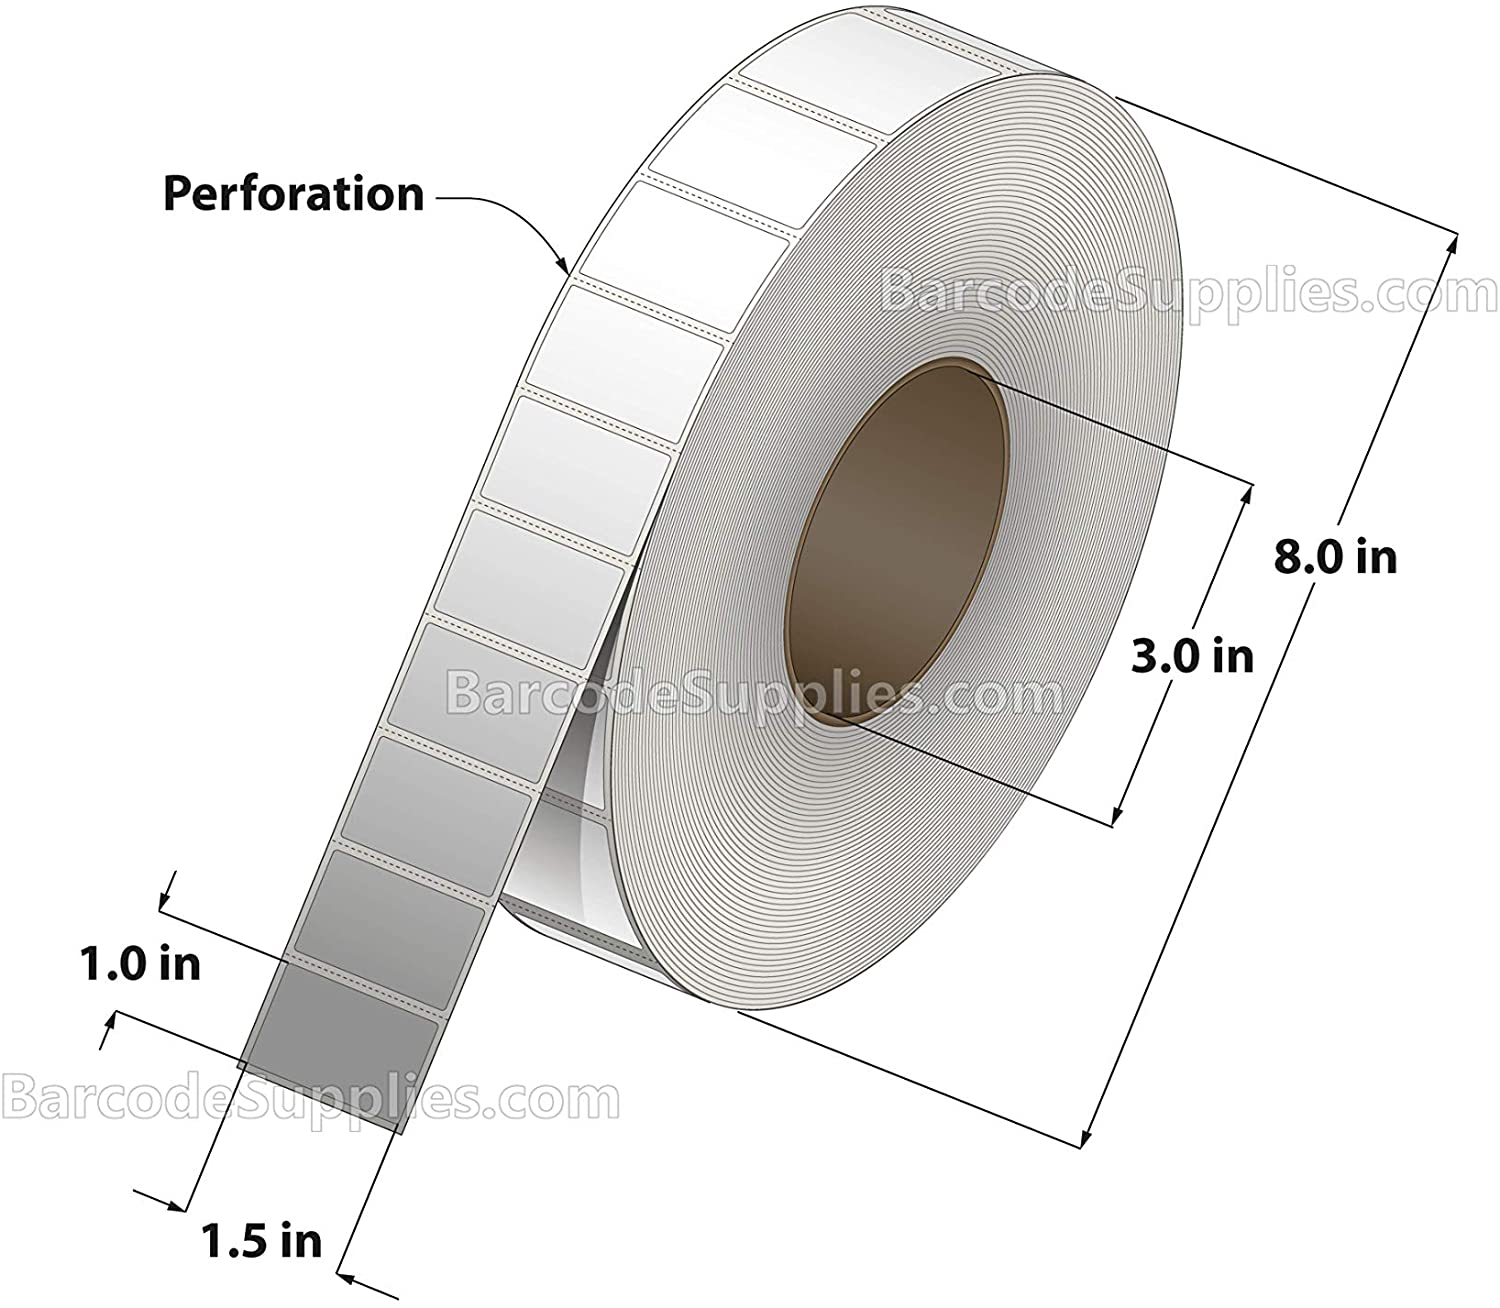 1.5 x 1 Thermal Transfer Paper Labels - Ribbon Required - 5500 Labels/Roll - 4 Rolls - for Zebra, Datamax, Sato and Intermec Thermal Transfer Printers